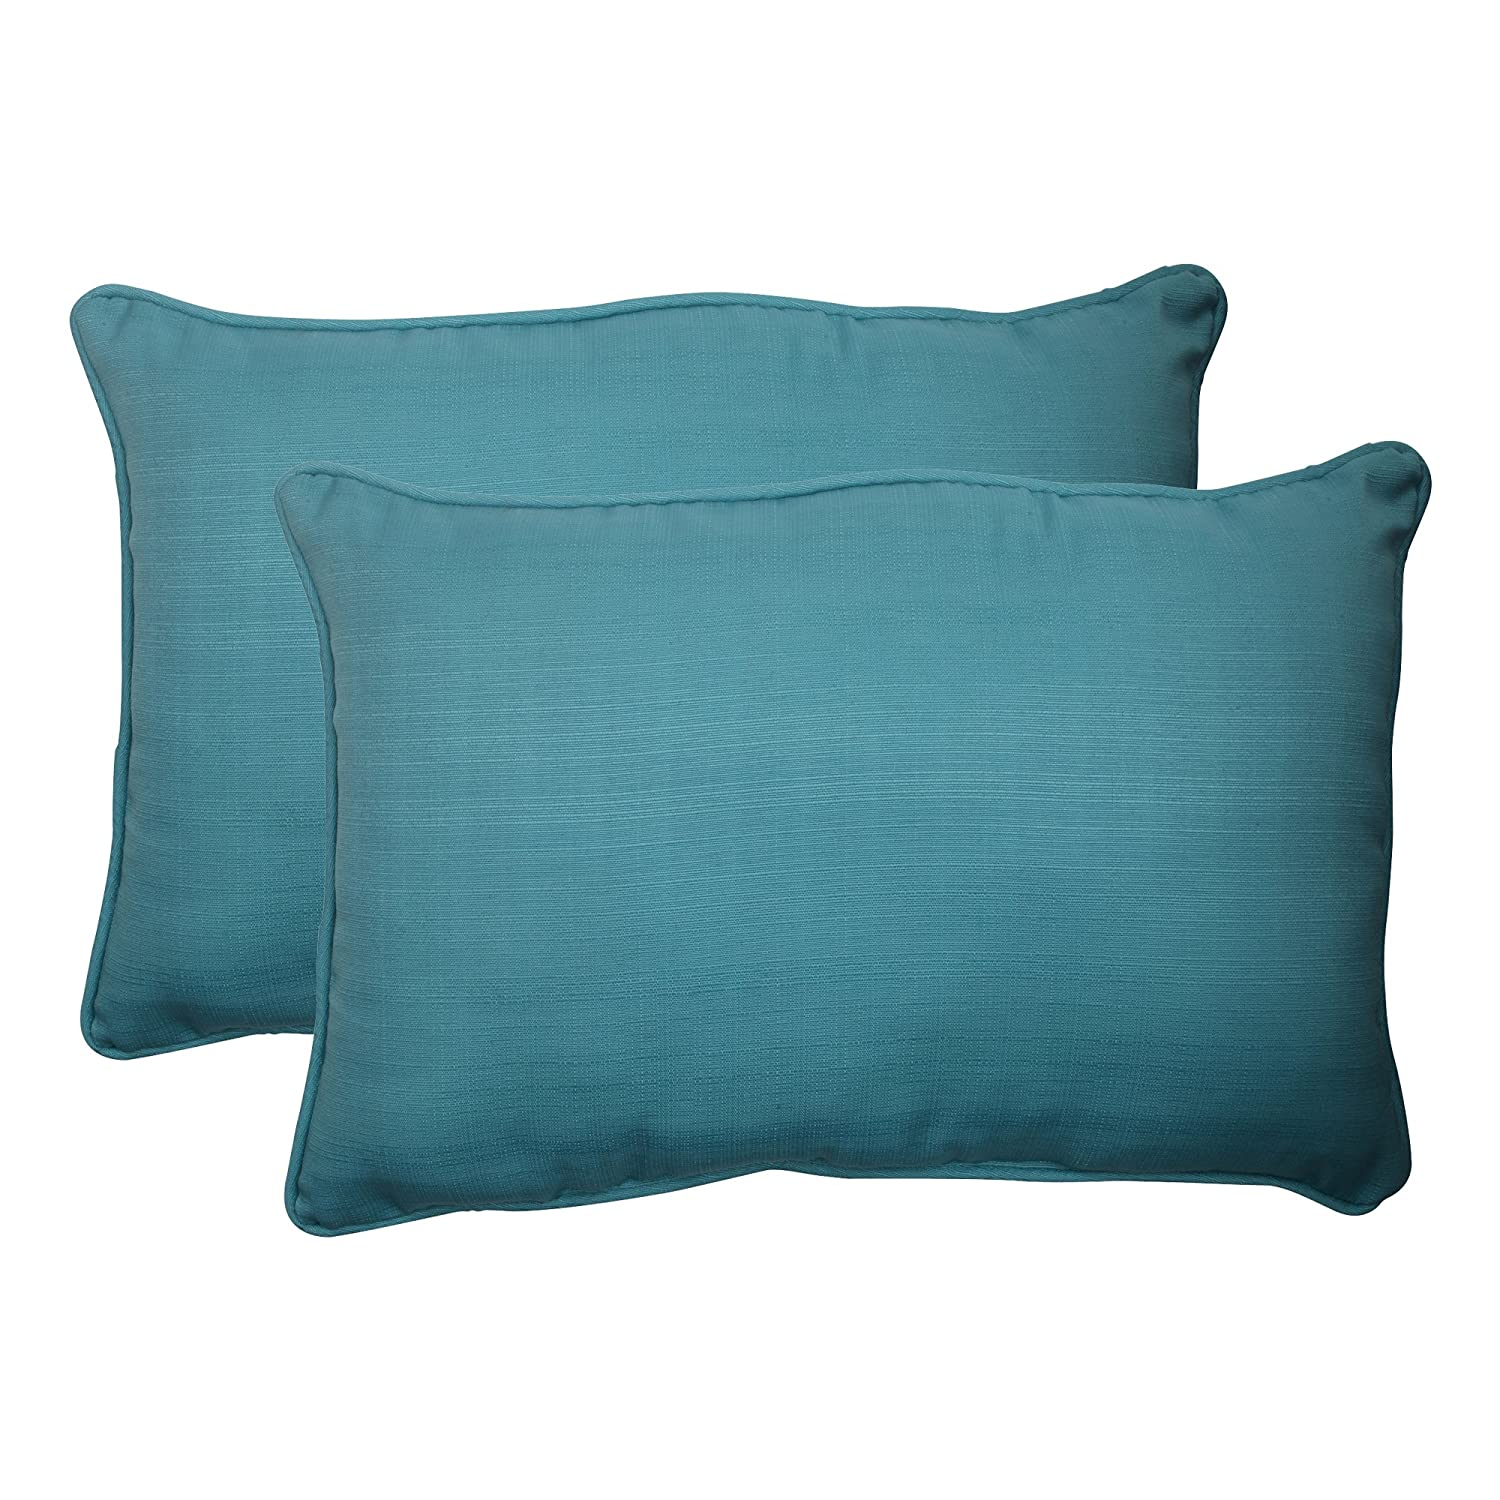 Turquoise Set of 2 507019 Pillow Perfect Outdoor Forsyth Corded Oversized Rectangular Throw Pillow